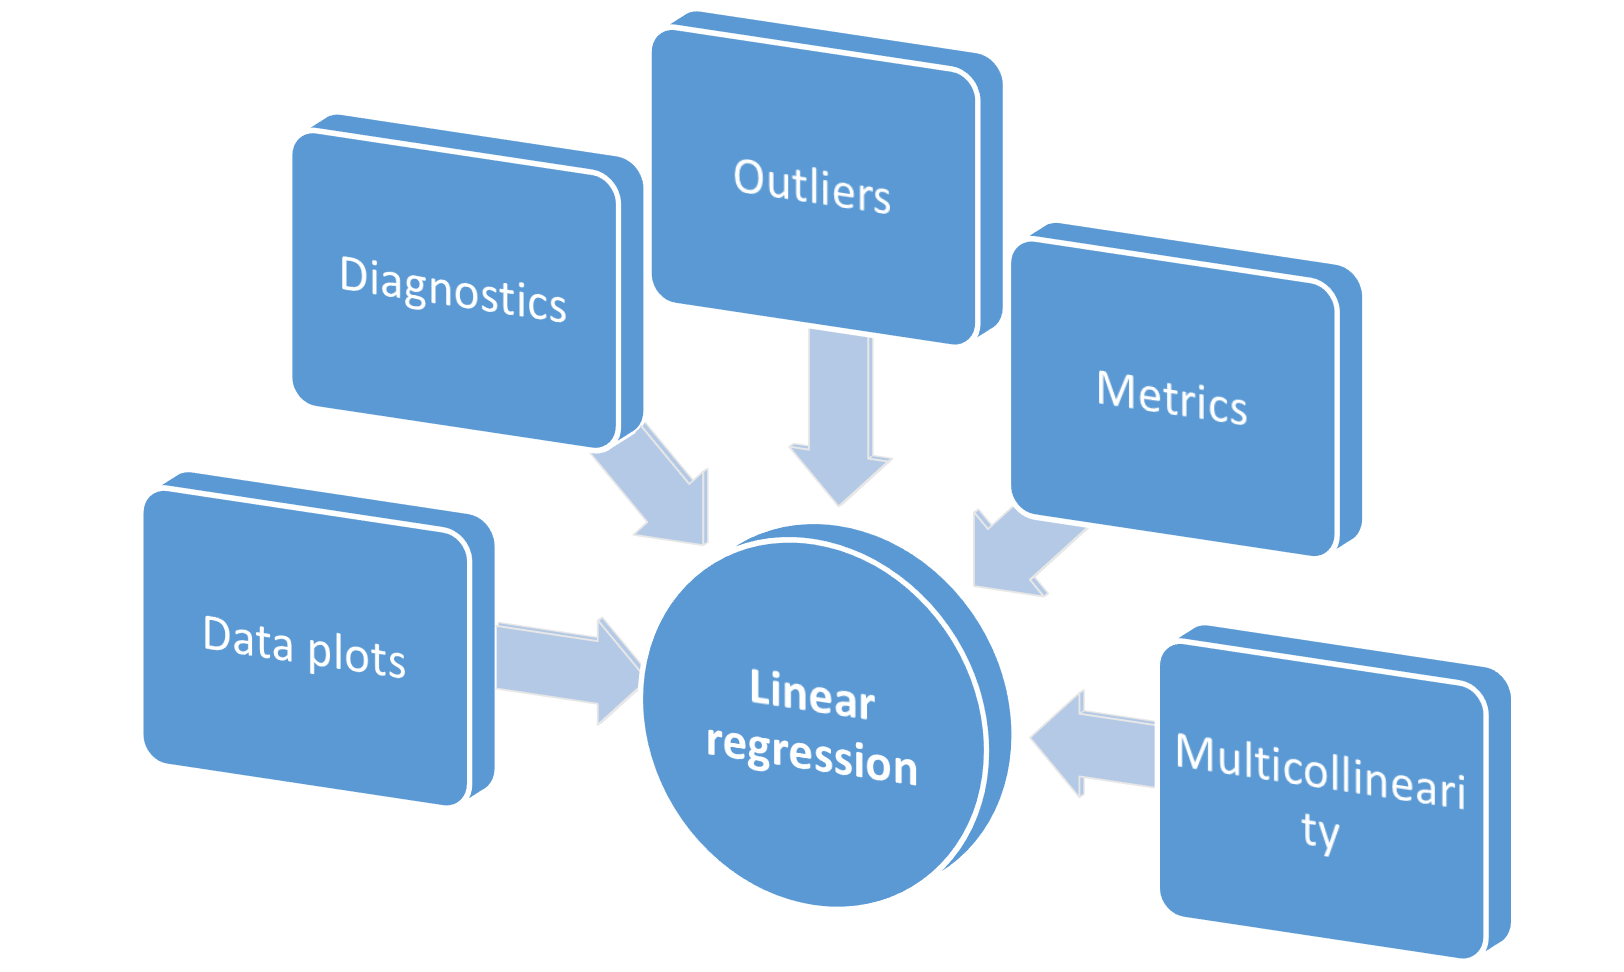 Object-oriented programming for data scientists: Build your